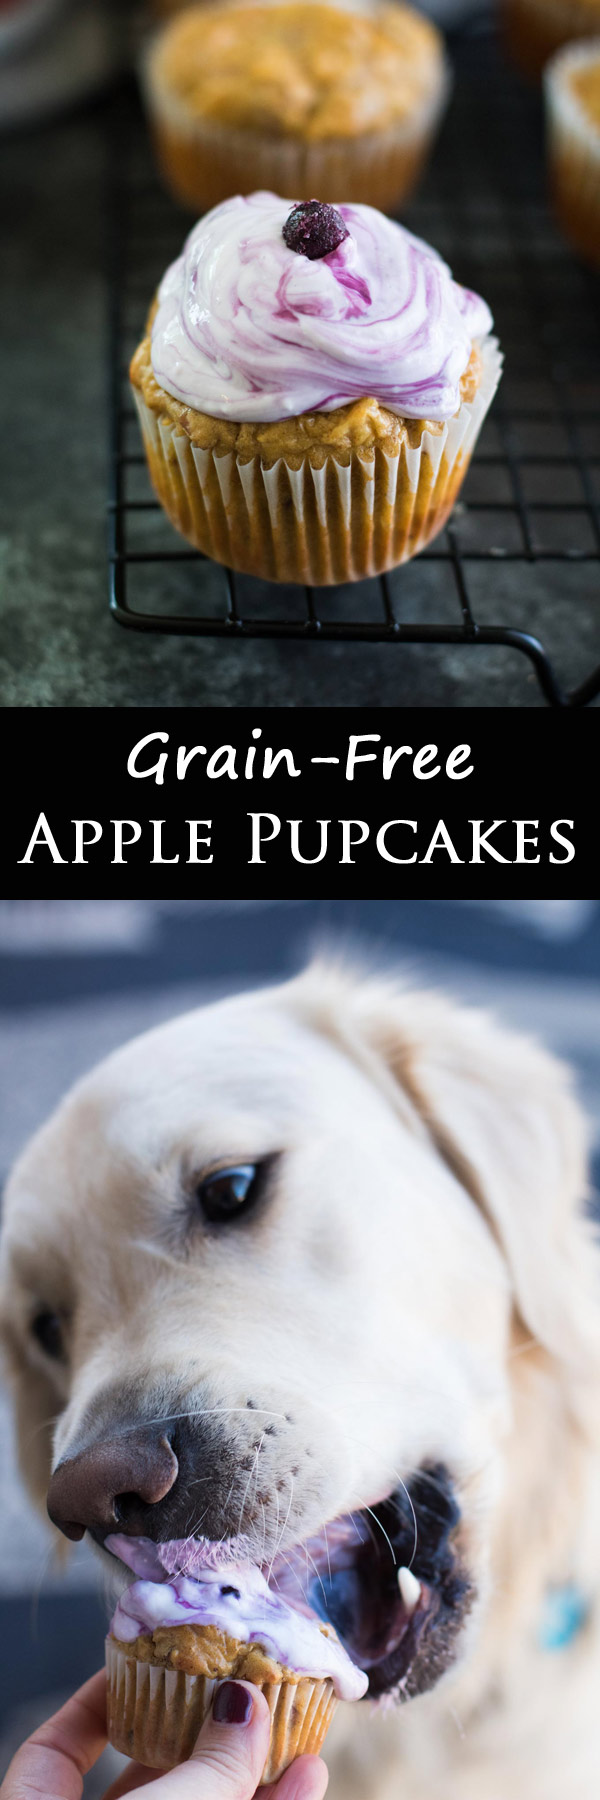 Four simple ingredients that make these pupcakes perfect for spoiling our puppies while not upsetting their tummies or any allergies! Grain-free and topped with frosting!